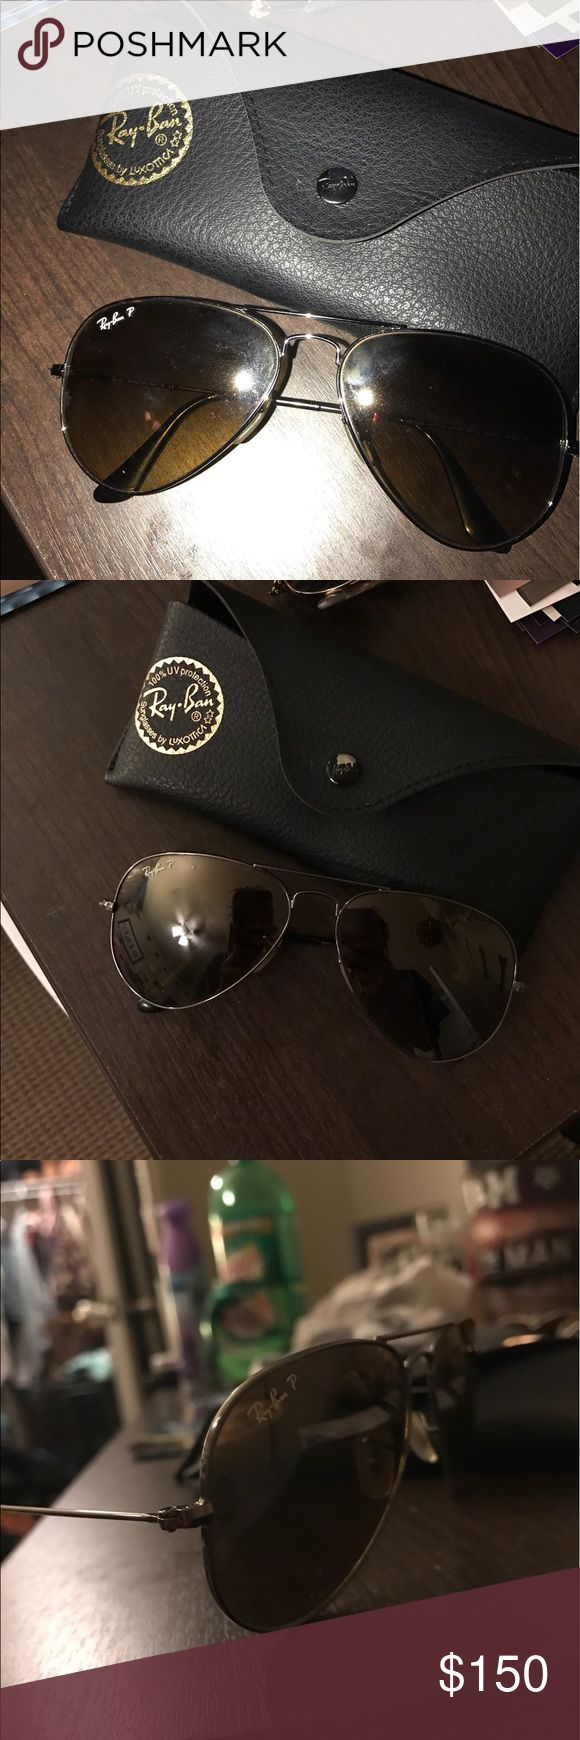 Ray-bans polarized Very good condition. Barely used, no scratches. Gun metal frame and brown lens Ray-Ban Accessories Glasses